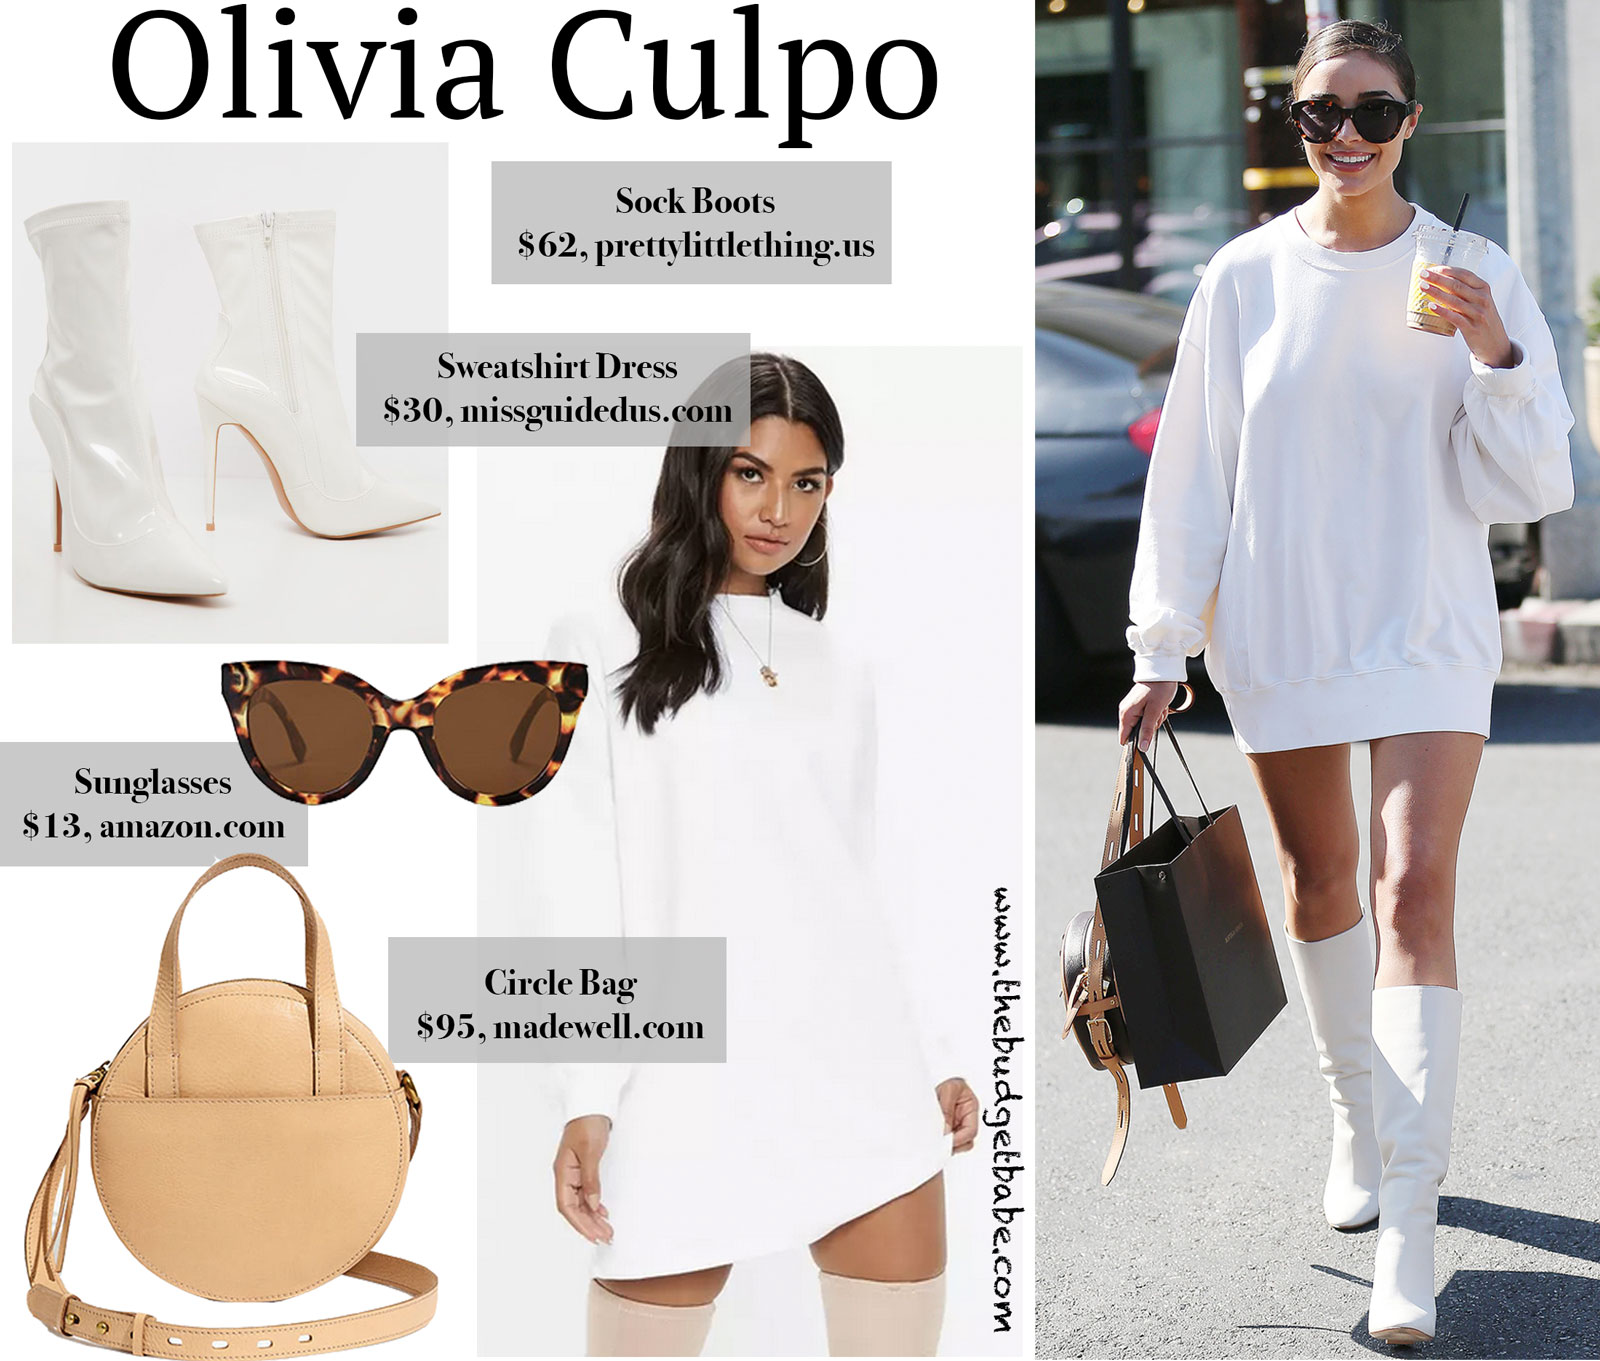 Olivia Culpo White Sweatshirt Dress Look for Less